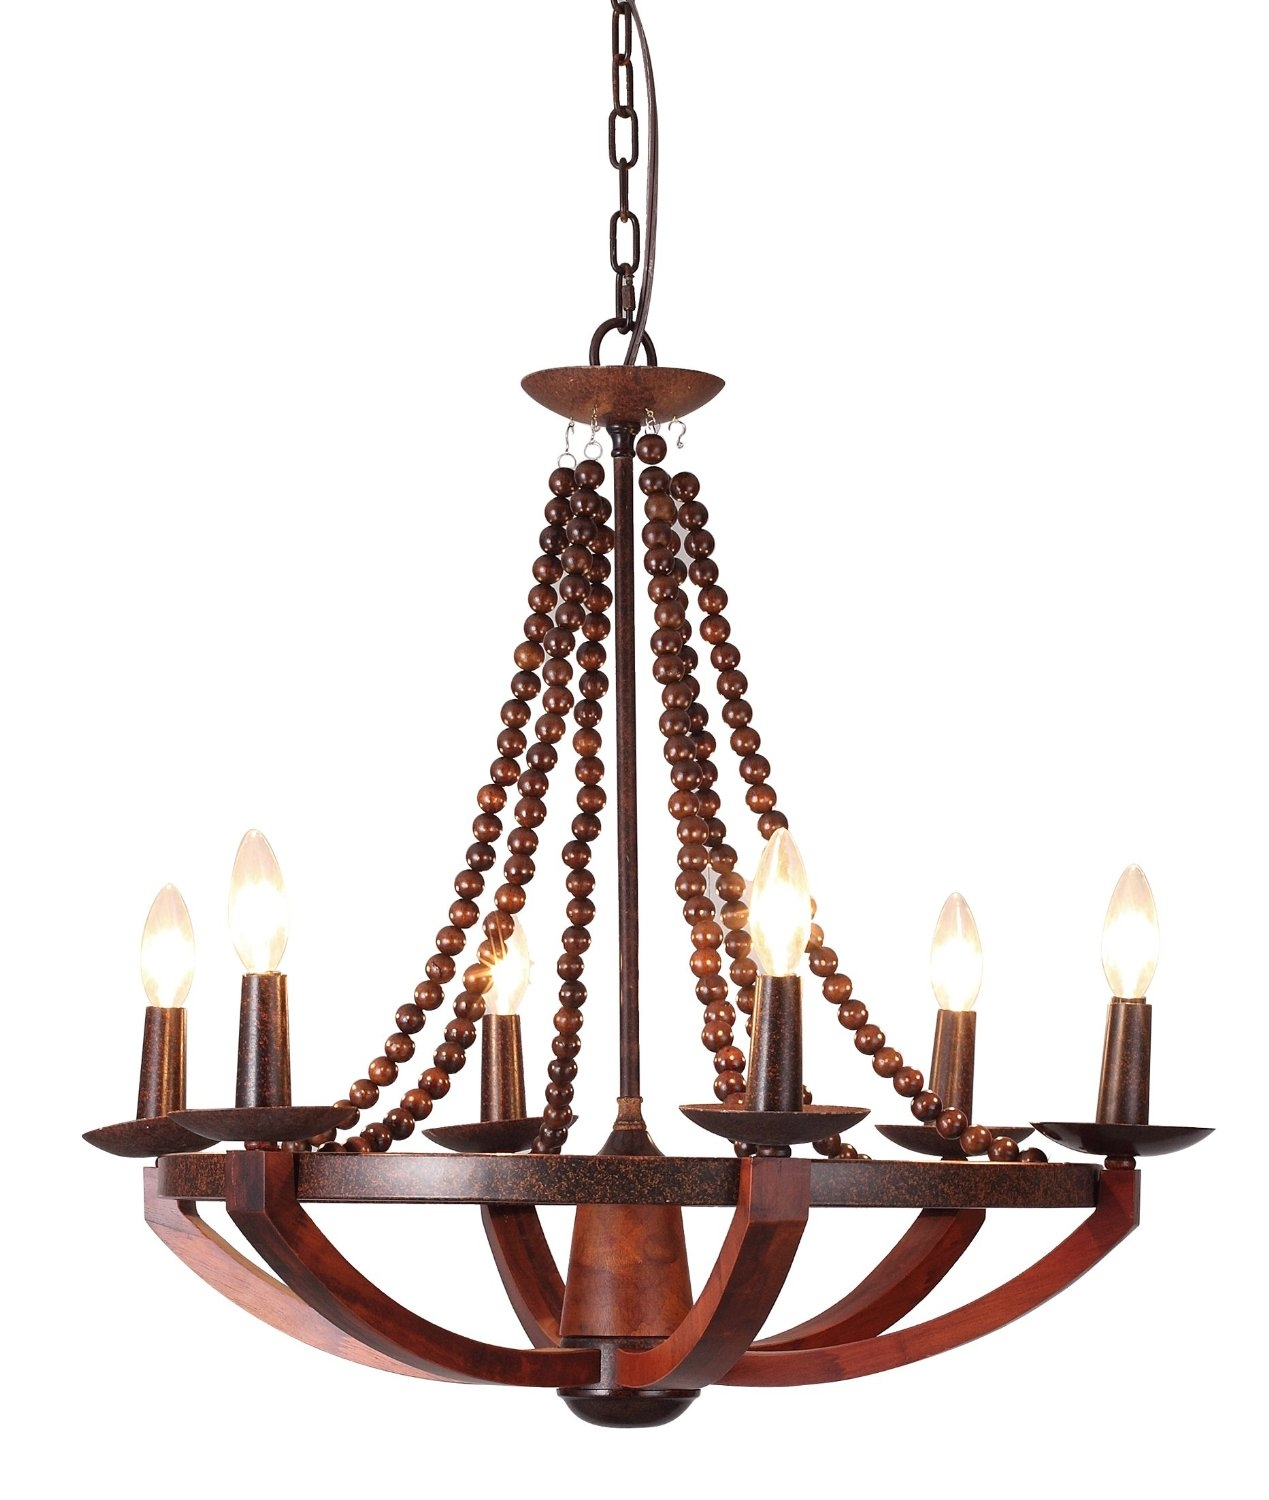 12 Best Rustic Wood And Metal Chandeliers Qosy With Regard To Wooden Chandeliers (#2 of 12)